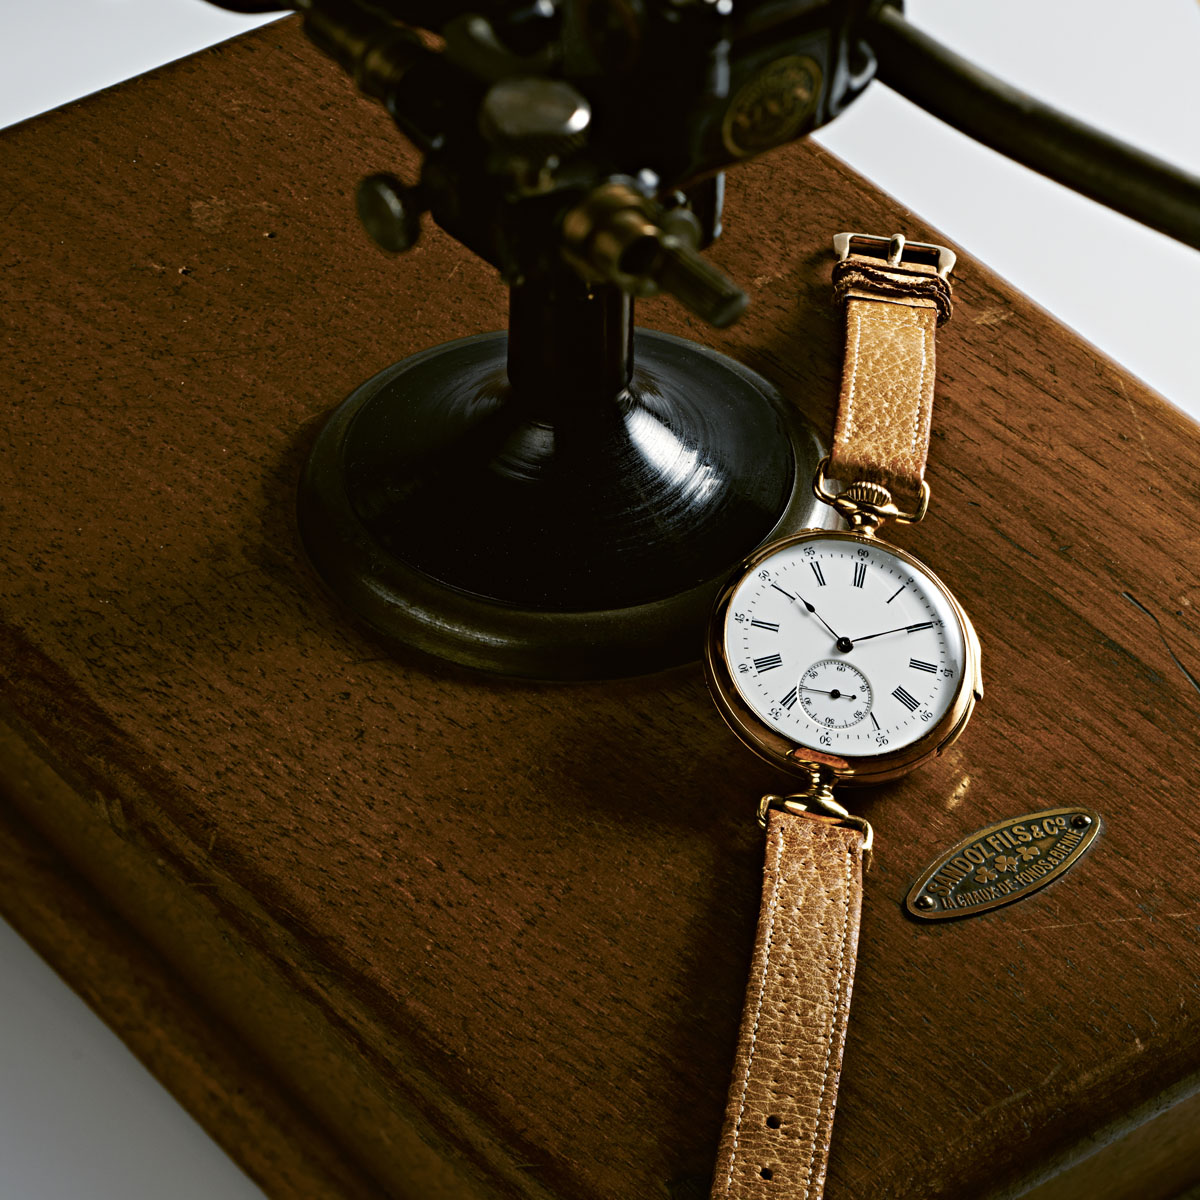 The world's first minute-repeating wristwatch